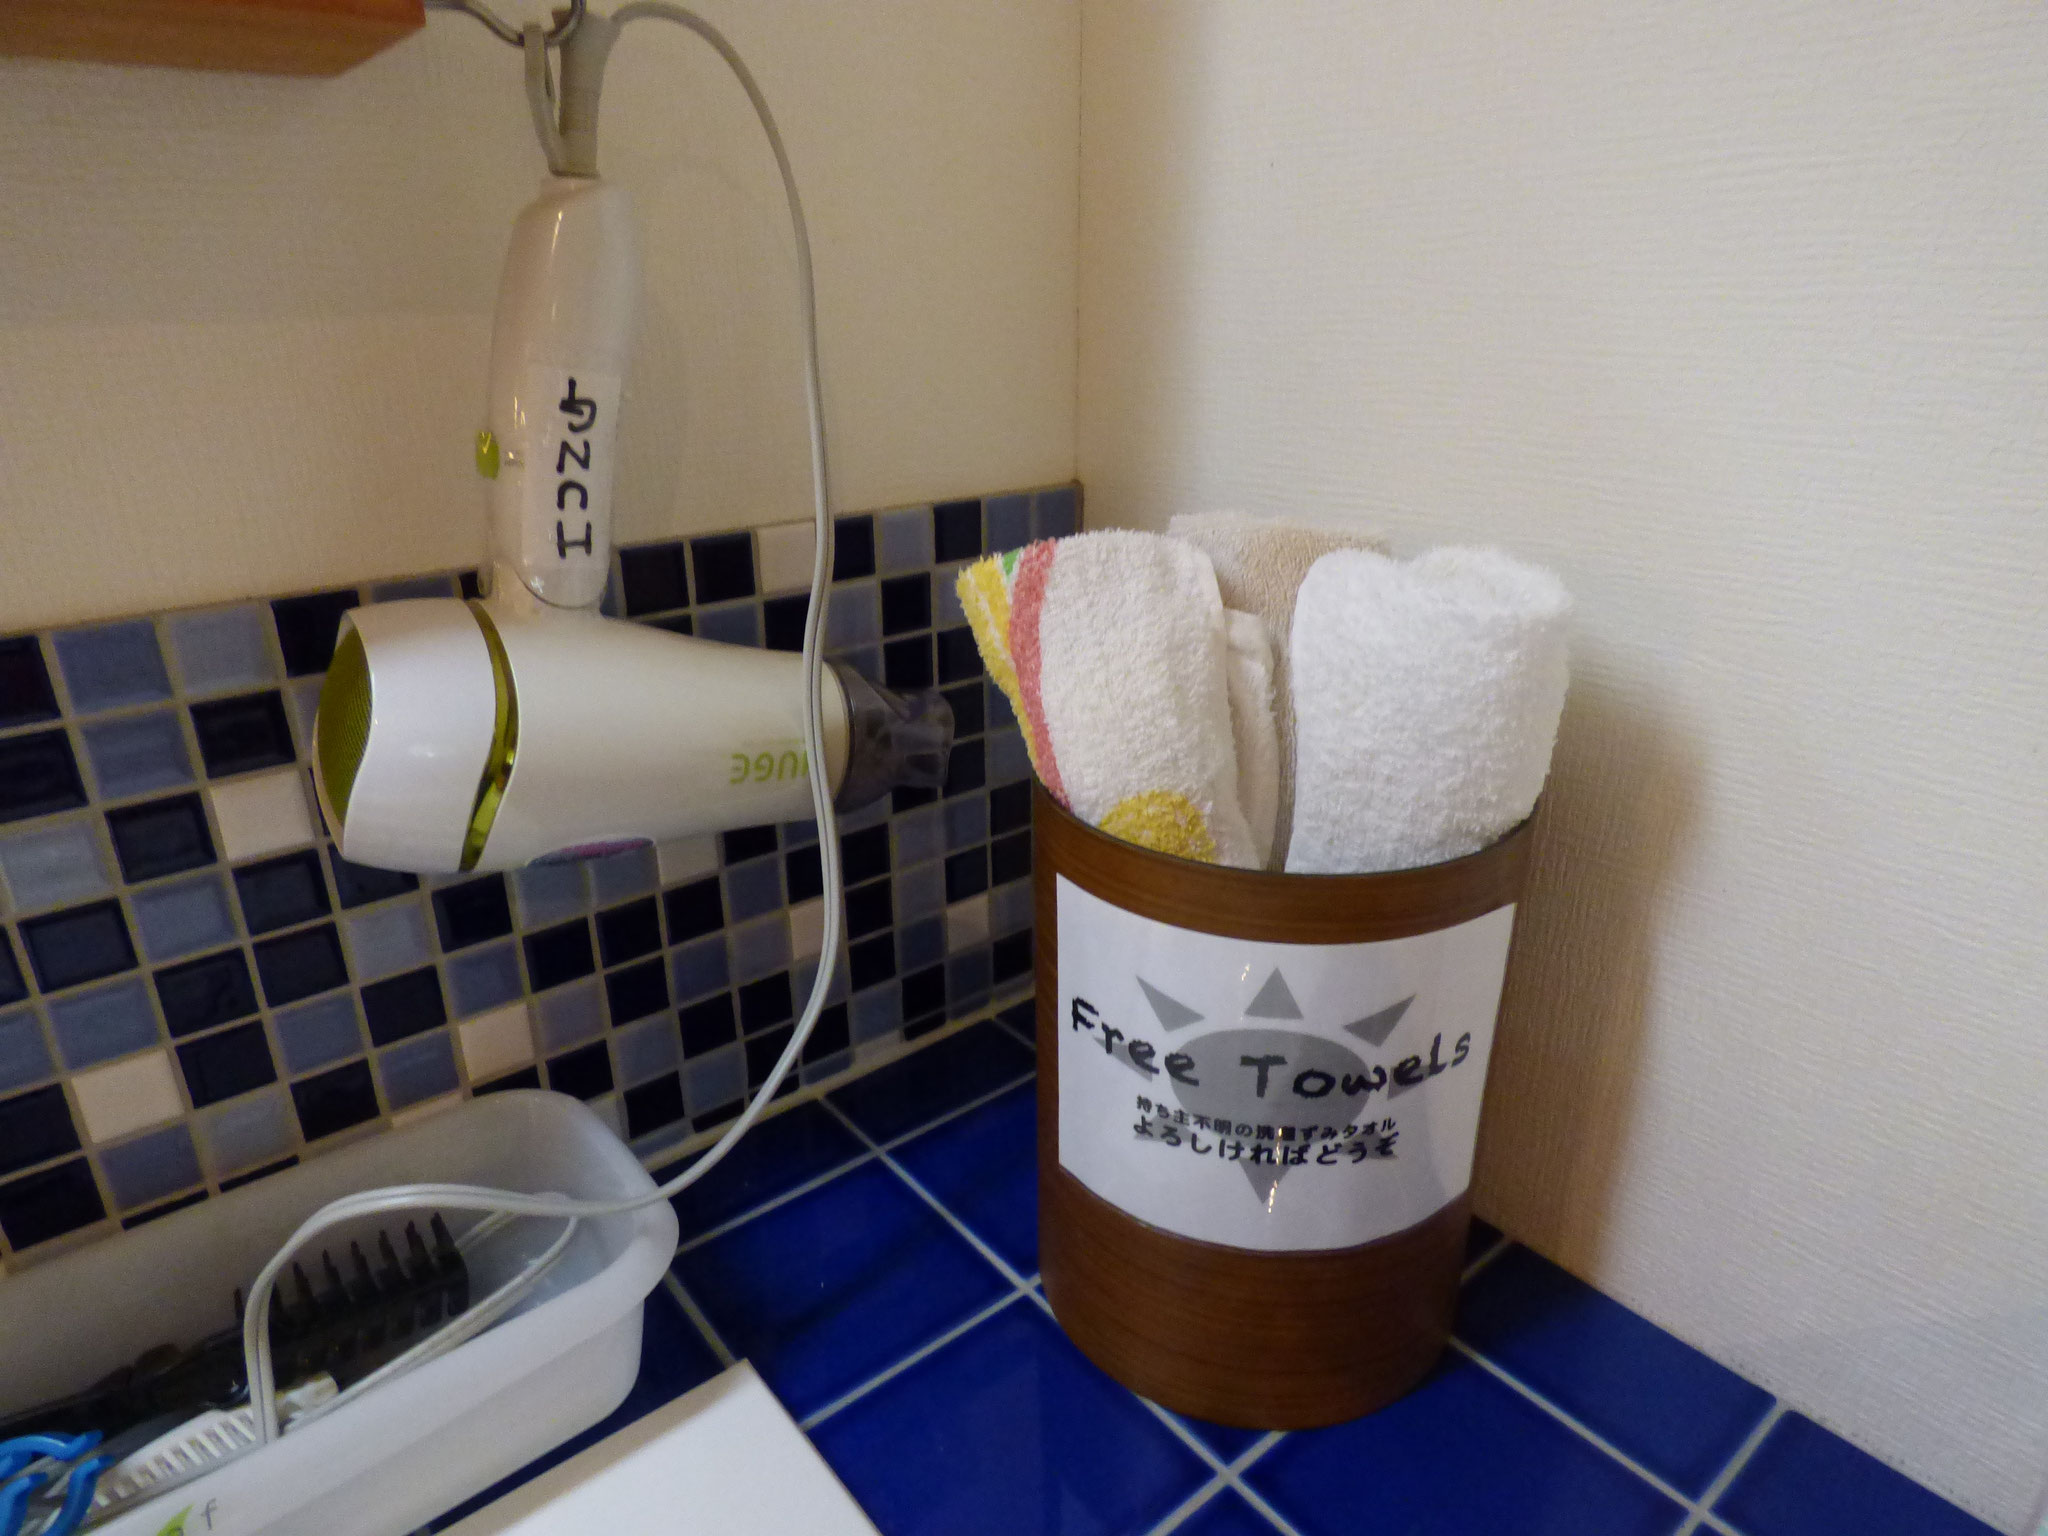 hand blower and free face towel